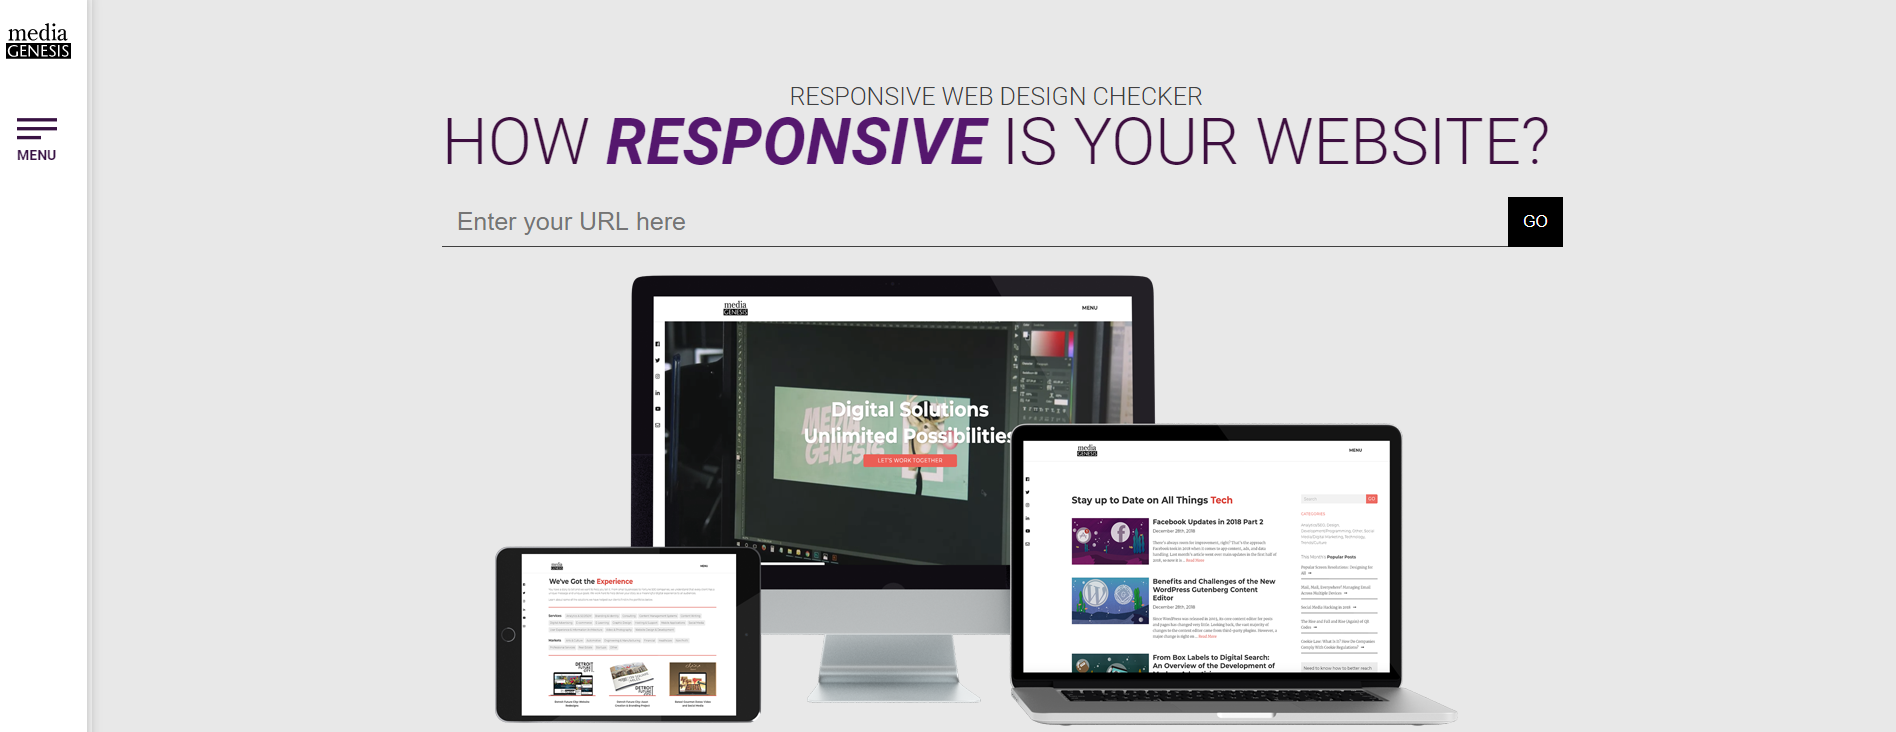 Responsive Design Checker